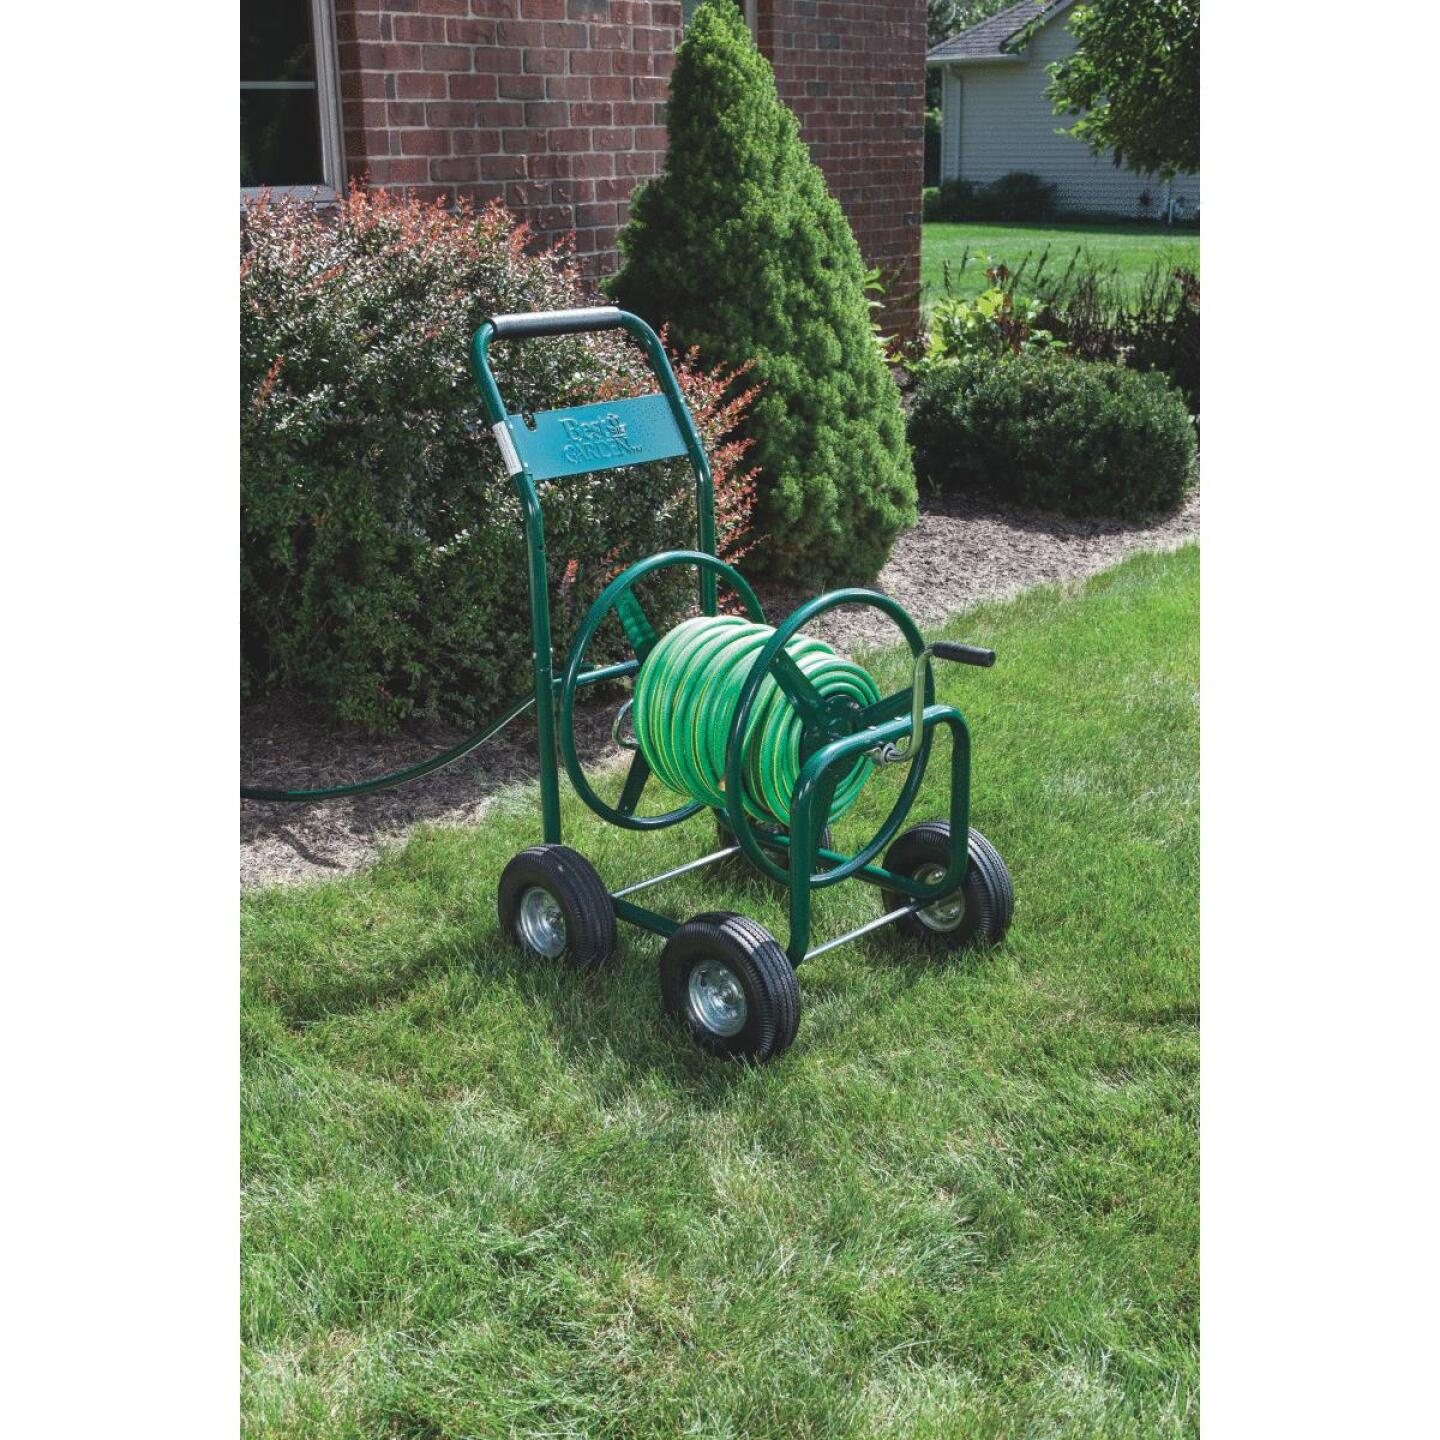 Best Garden 300 Ft. x 5/8 In. Green Metal 4-Wheel Portable Hose Reel Image 3